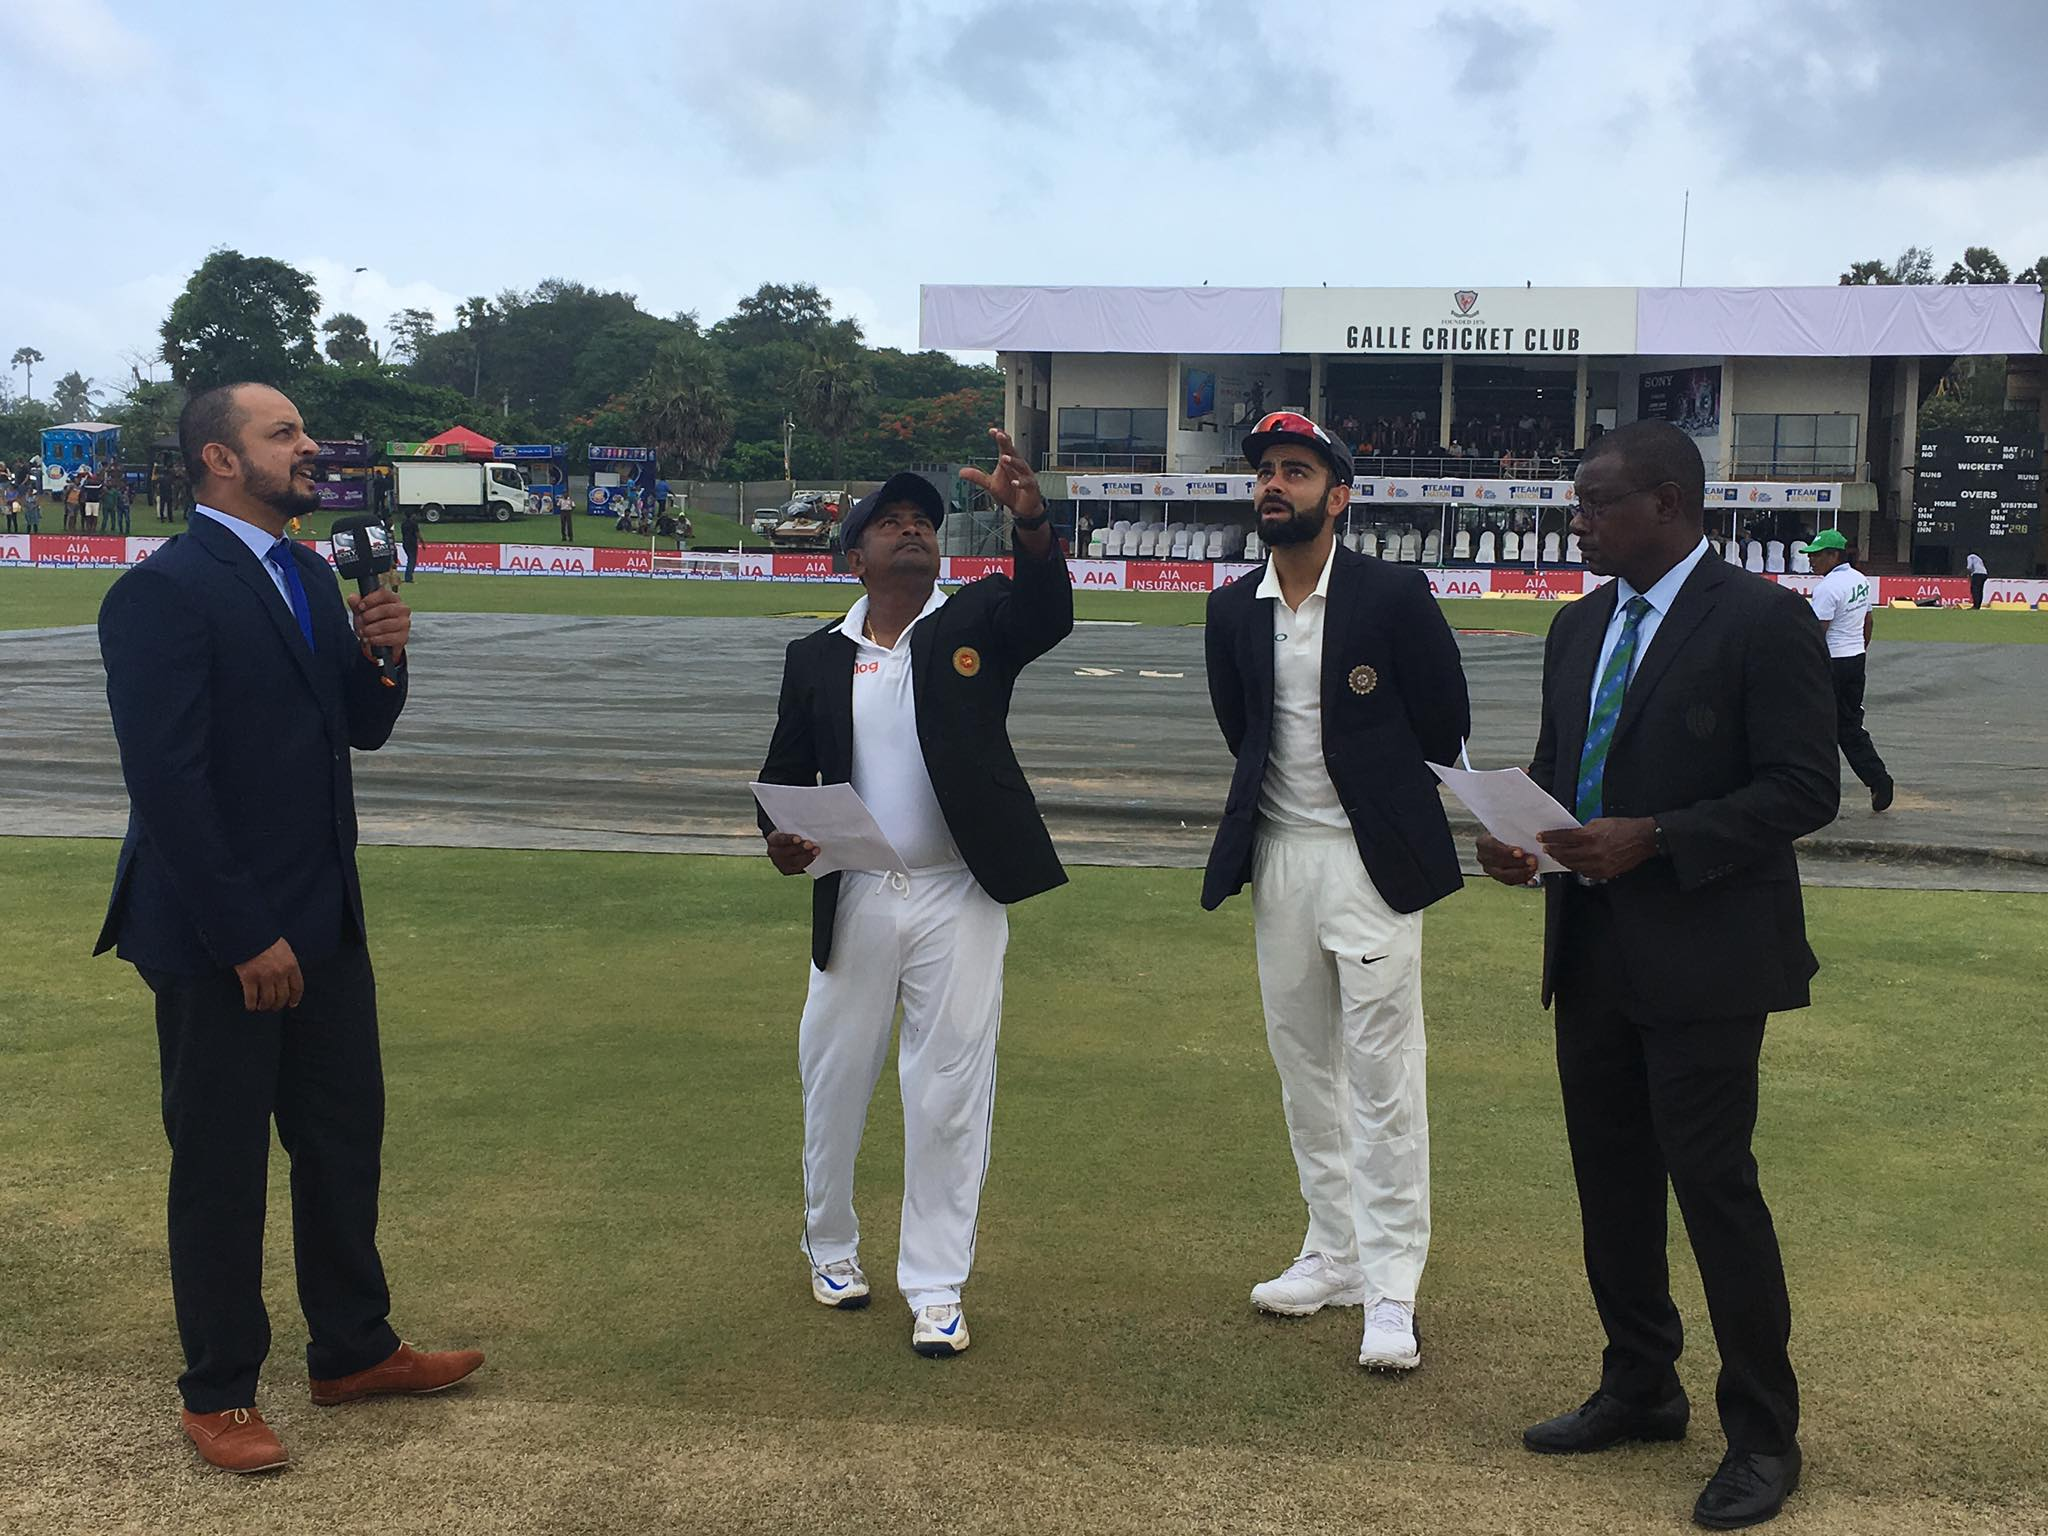 idnia win the toss in galle